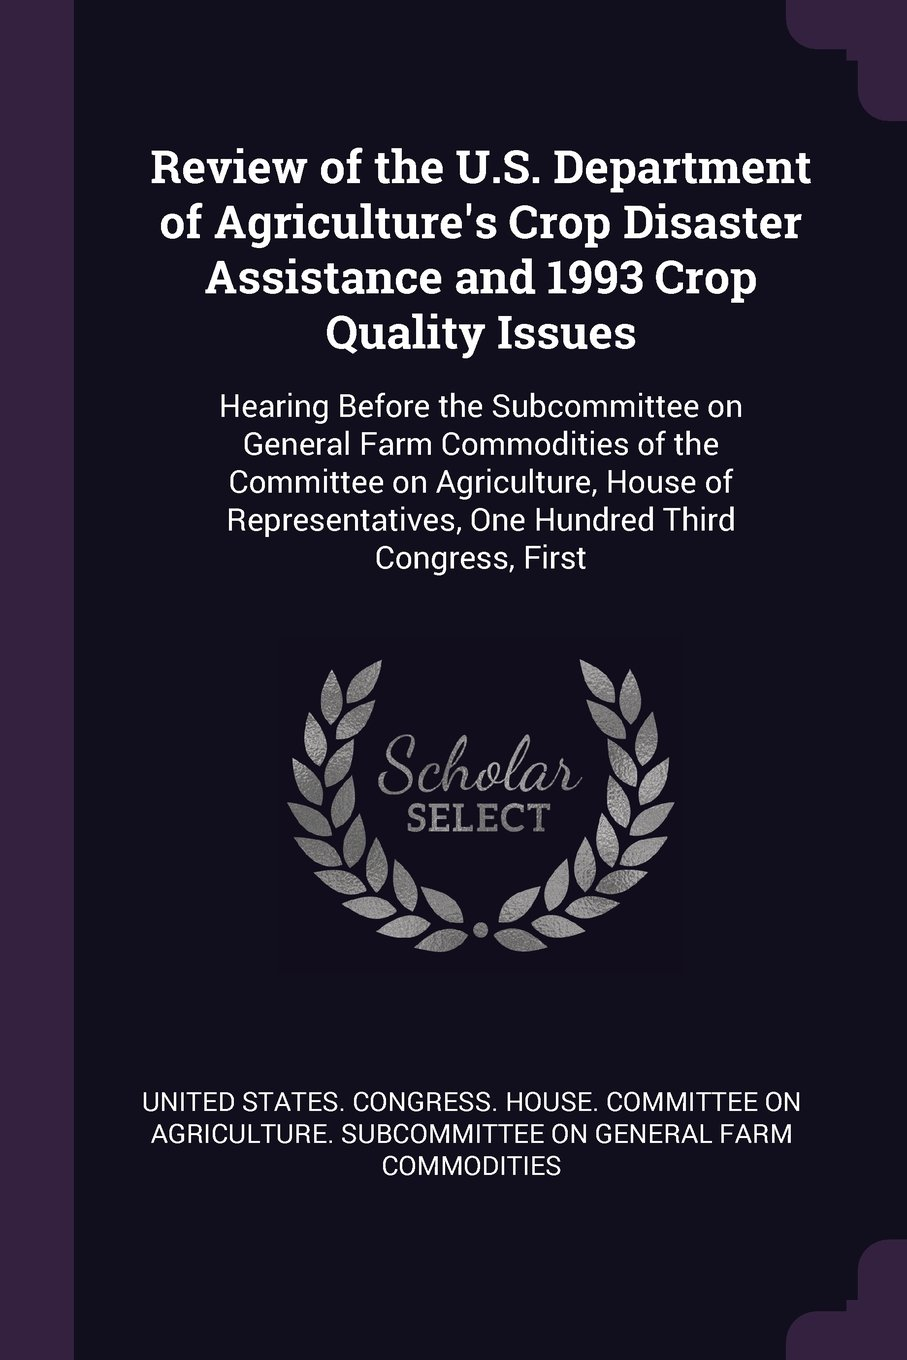 Download Review of the U.S. Department of Agriculture's Crop Disaster Assistance and 1993 Crop Quality Issues: Hearing Before the Subcommittee on General Farm ... One Hundred Third Congress, First ebook